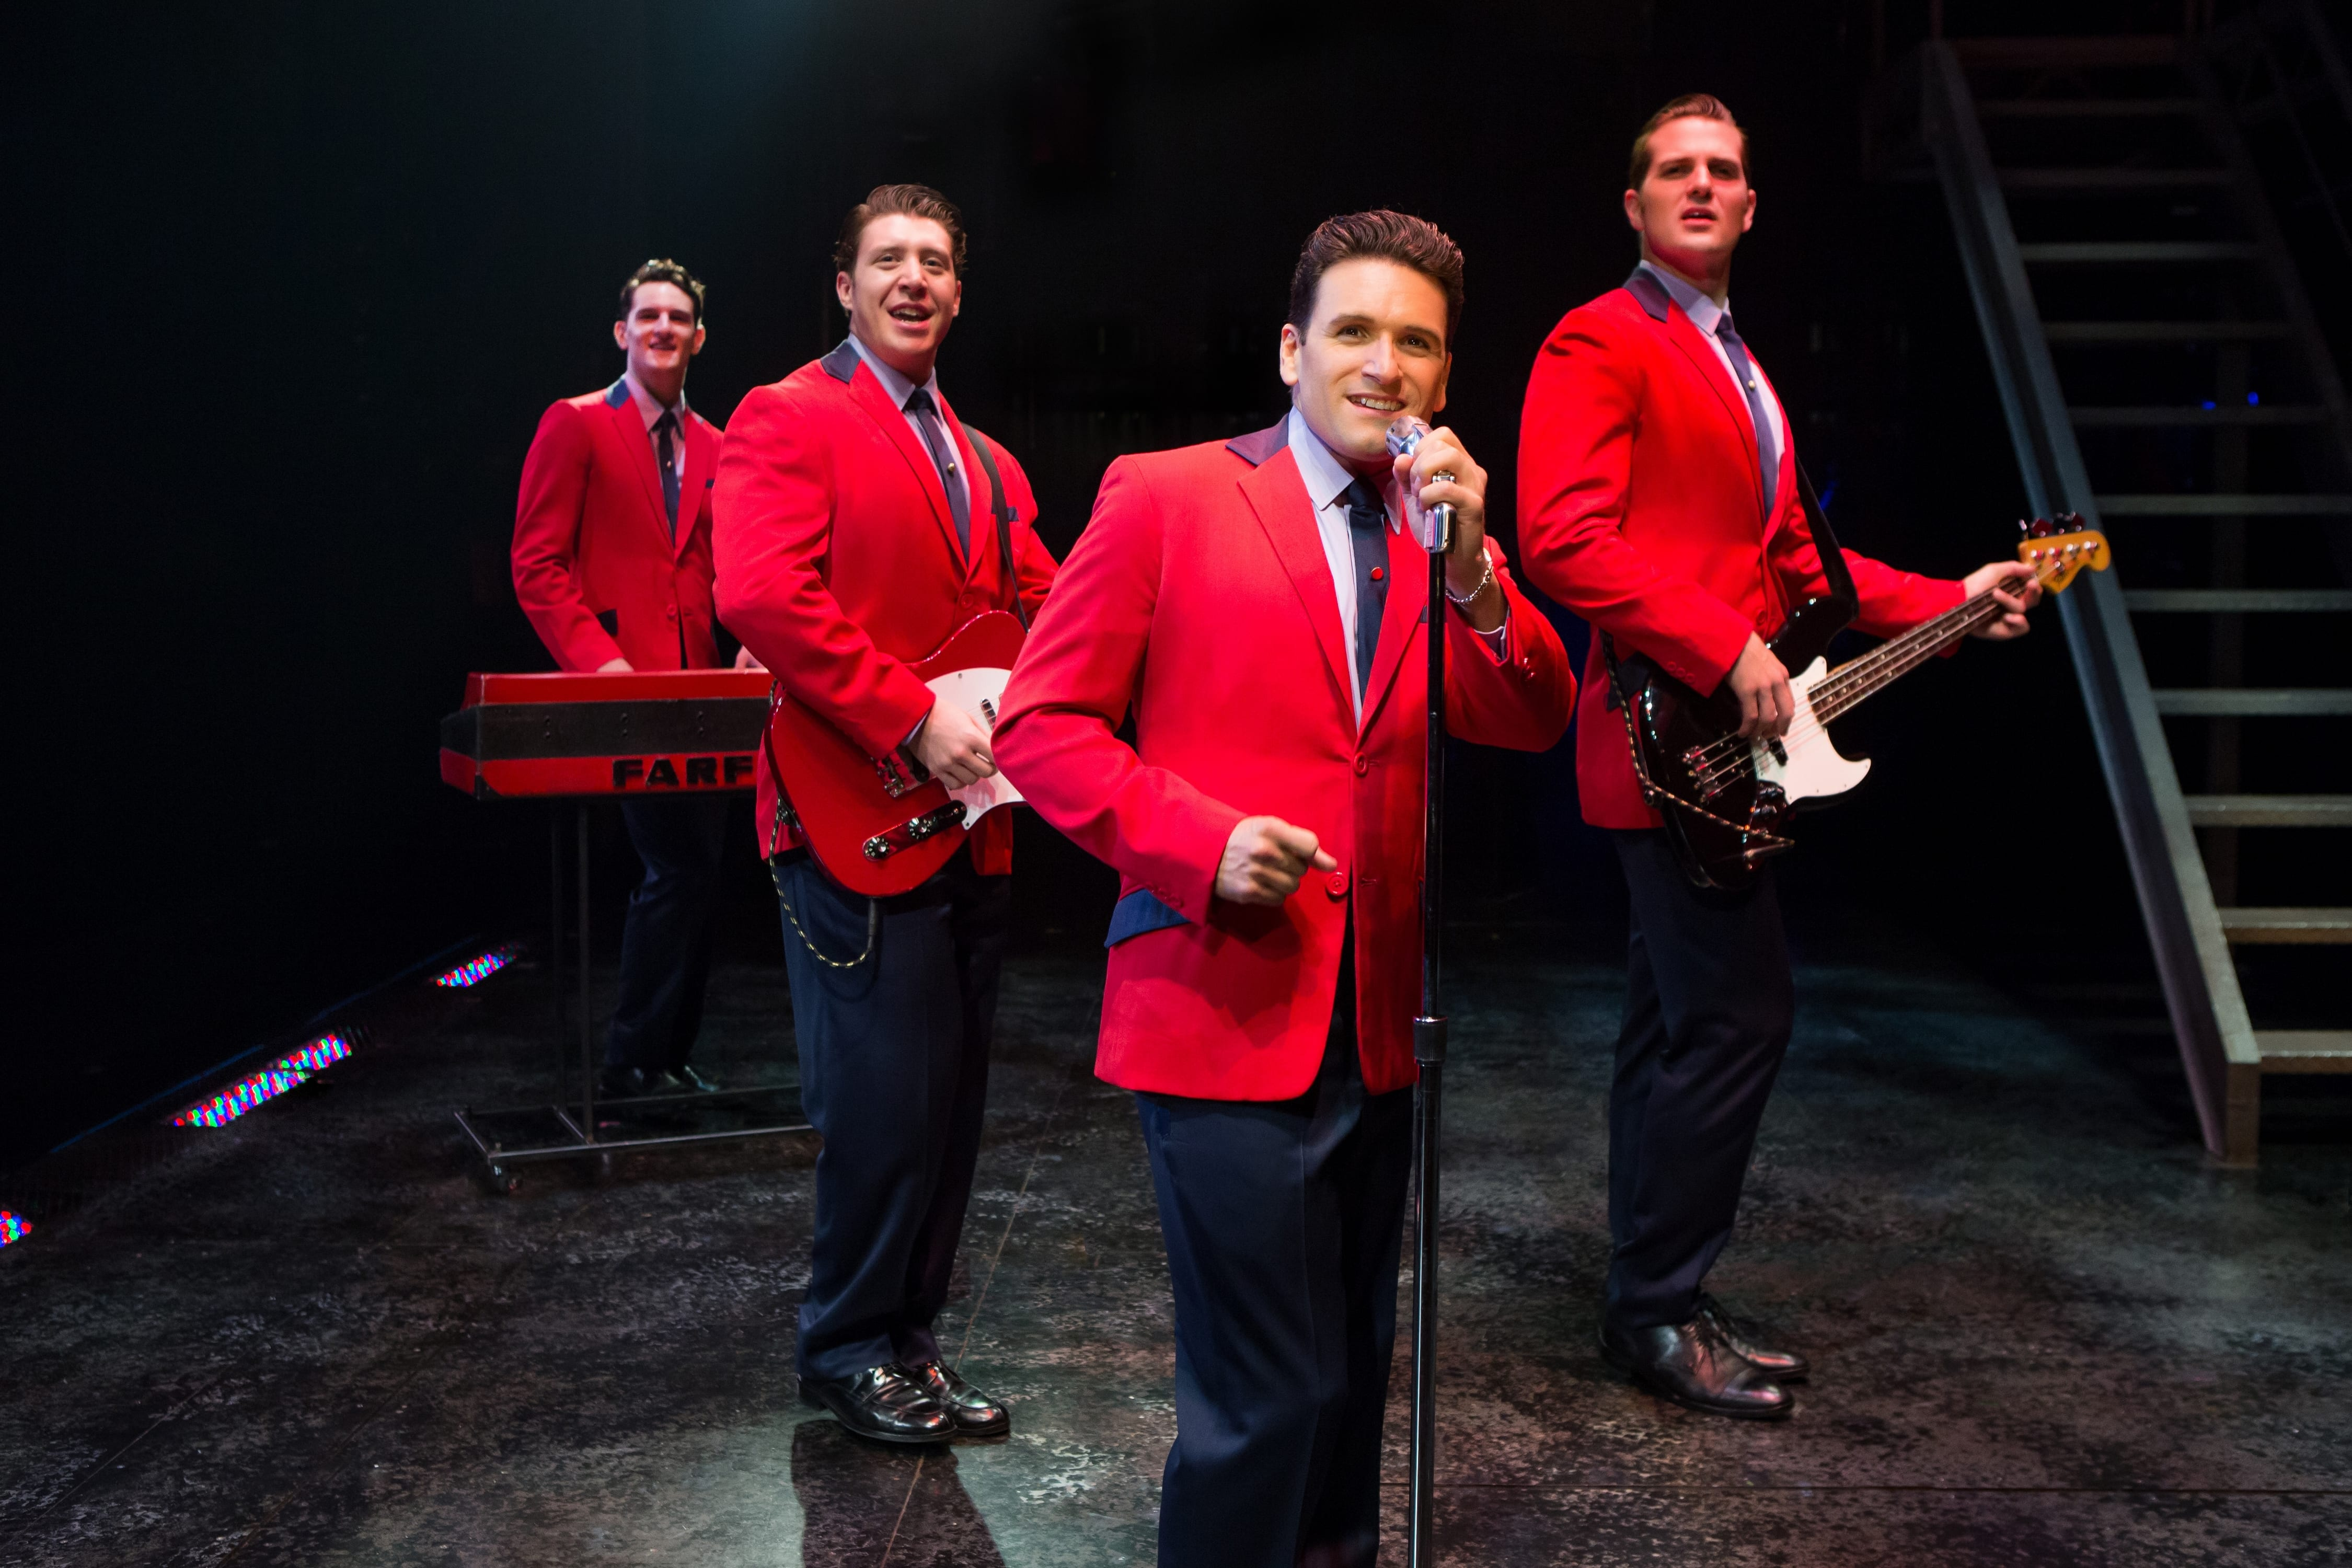 A quartet in red jackets.